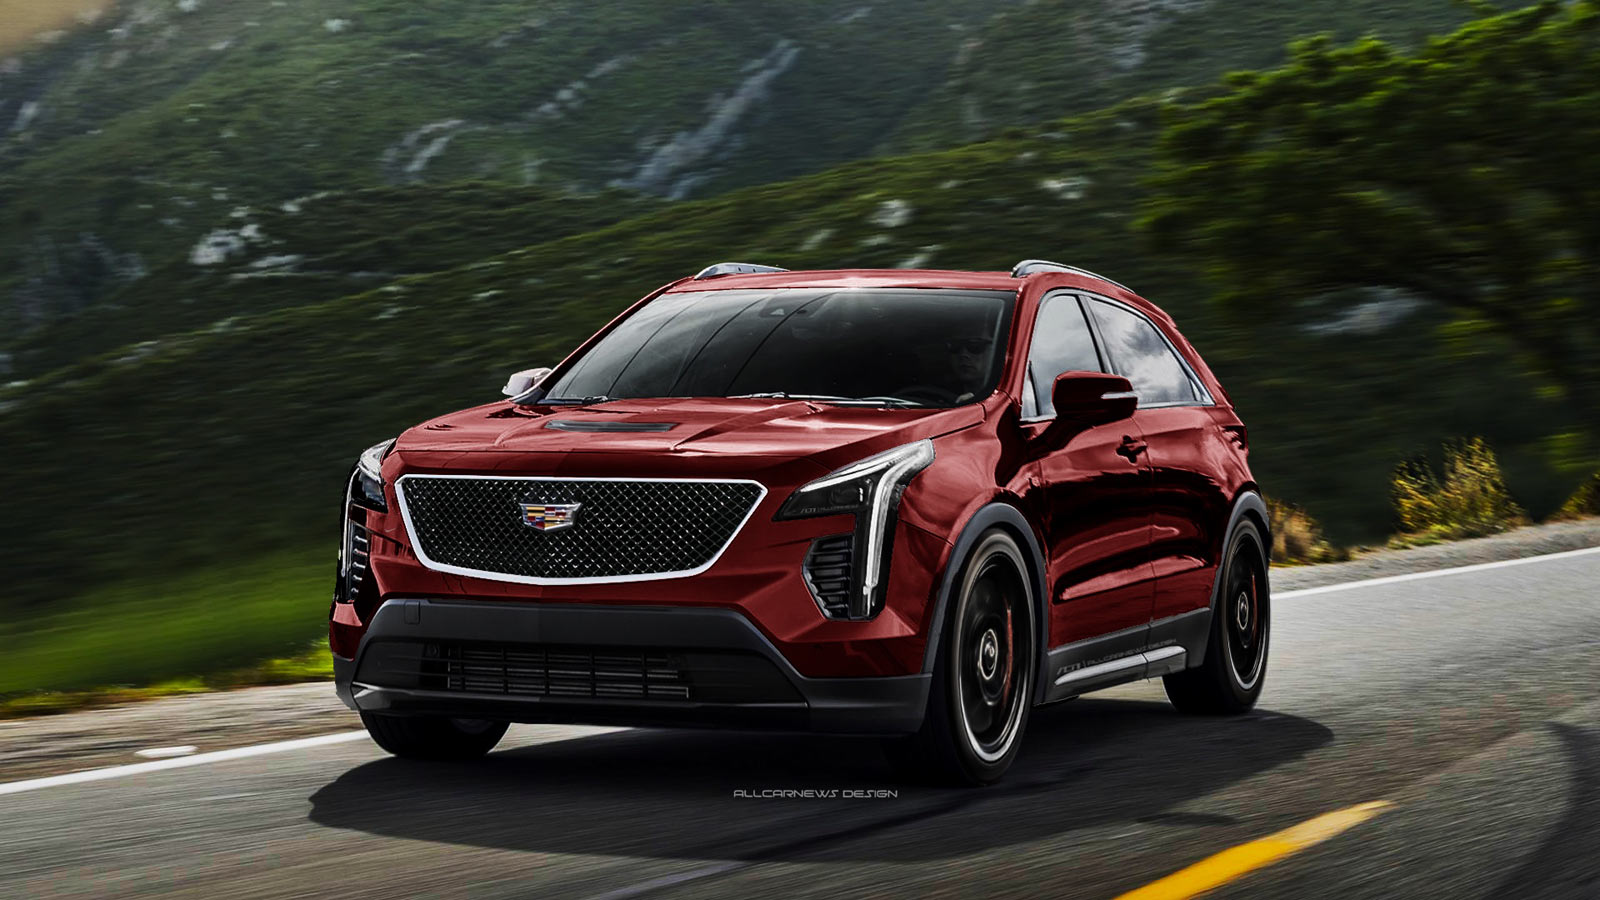 Cadillac Xt4 V Sport Imagined As Bmw X2 M35i Competitor